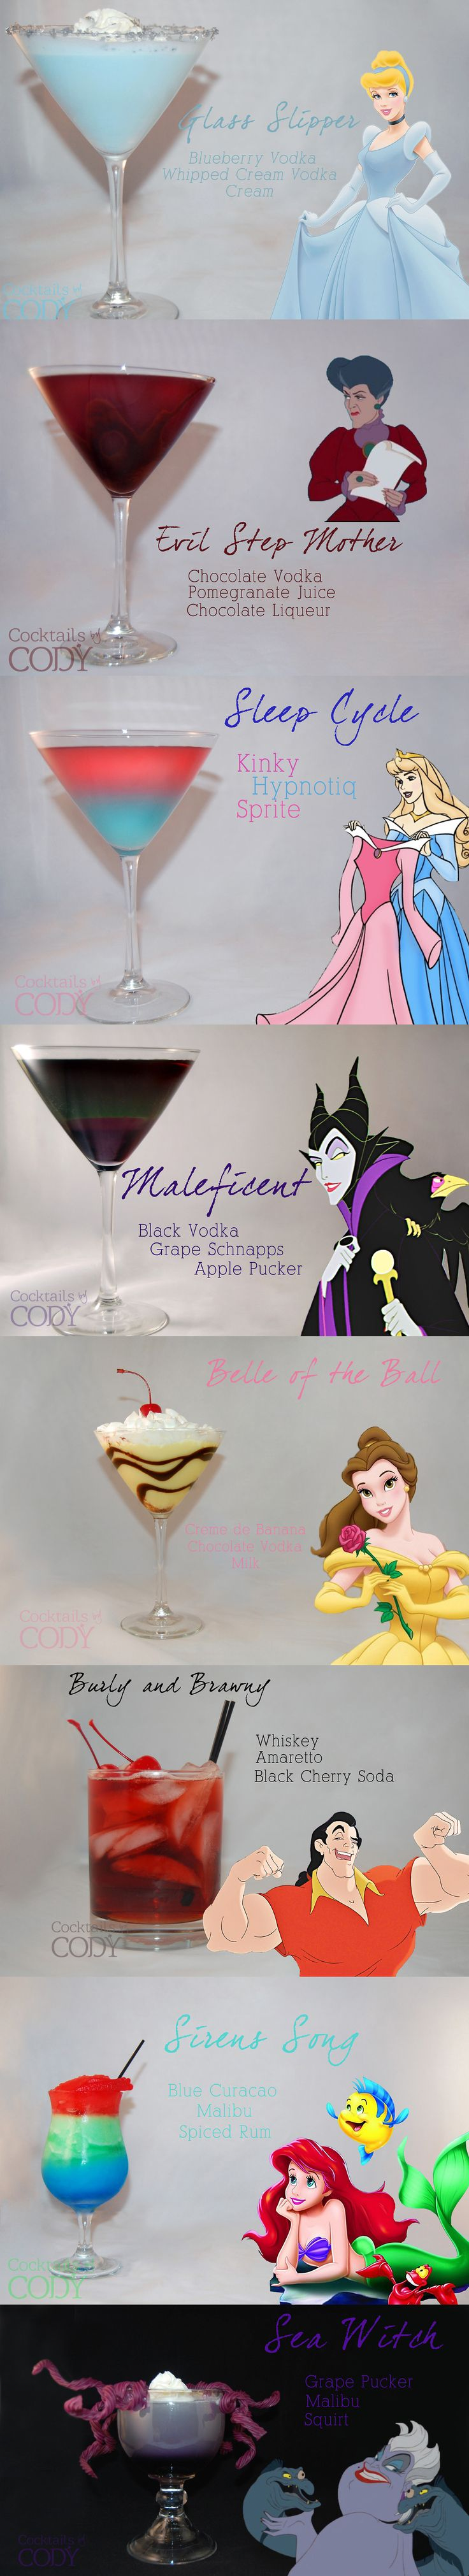 Disney Themed Cocktails from Cocktails by Cody -  ebook with full recipes available soon - https://www.facebook.com/Codys.cocktails